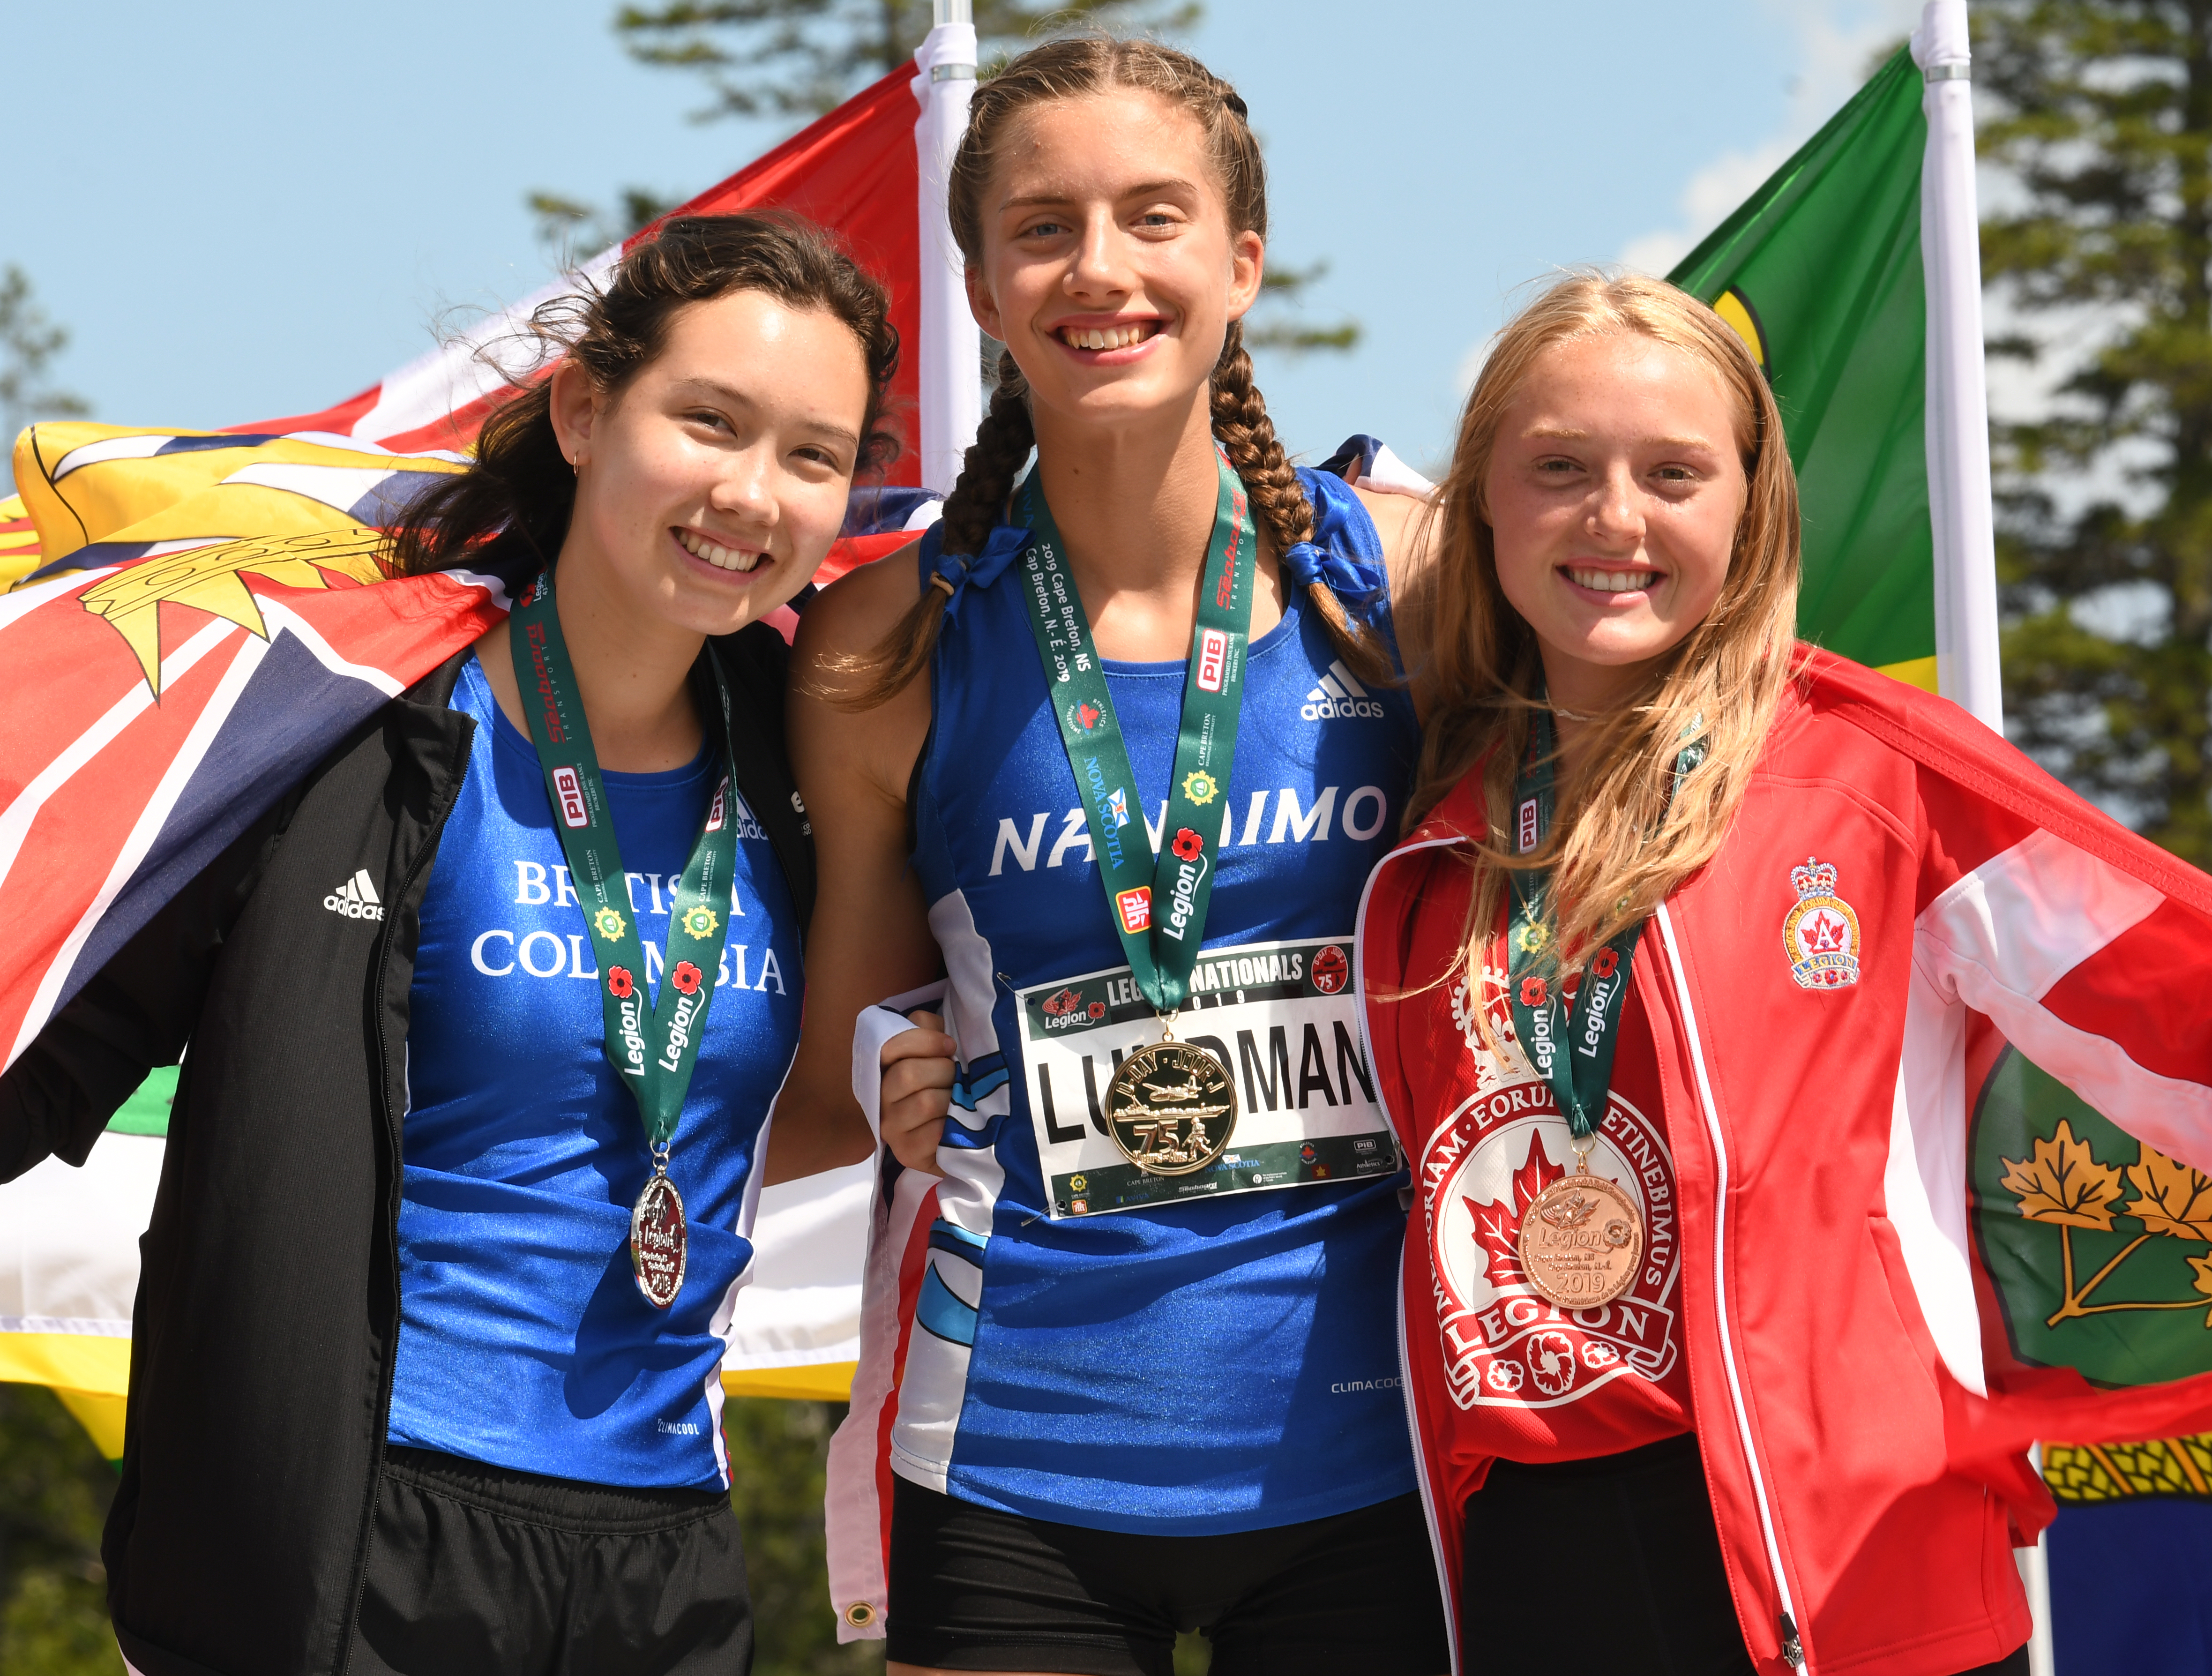 U18F 300m Walk Olivia Lundman takes home gold and a new Legion Nationals record. Standing on the podium with the Silver and Bronze medalists.